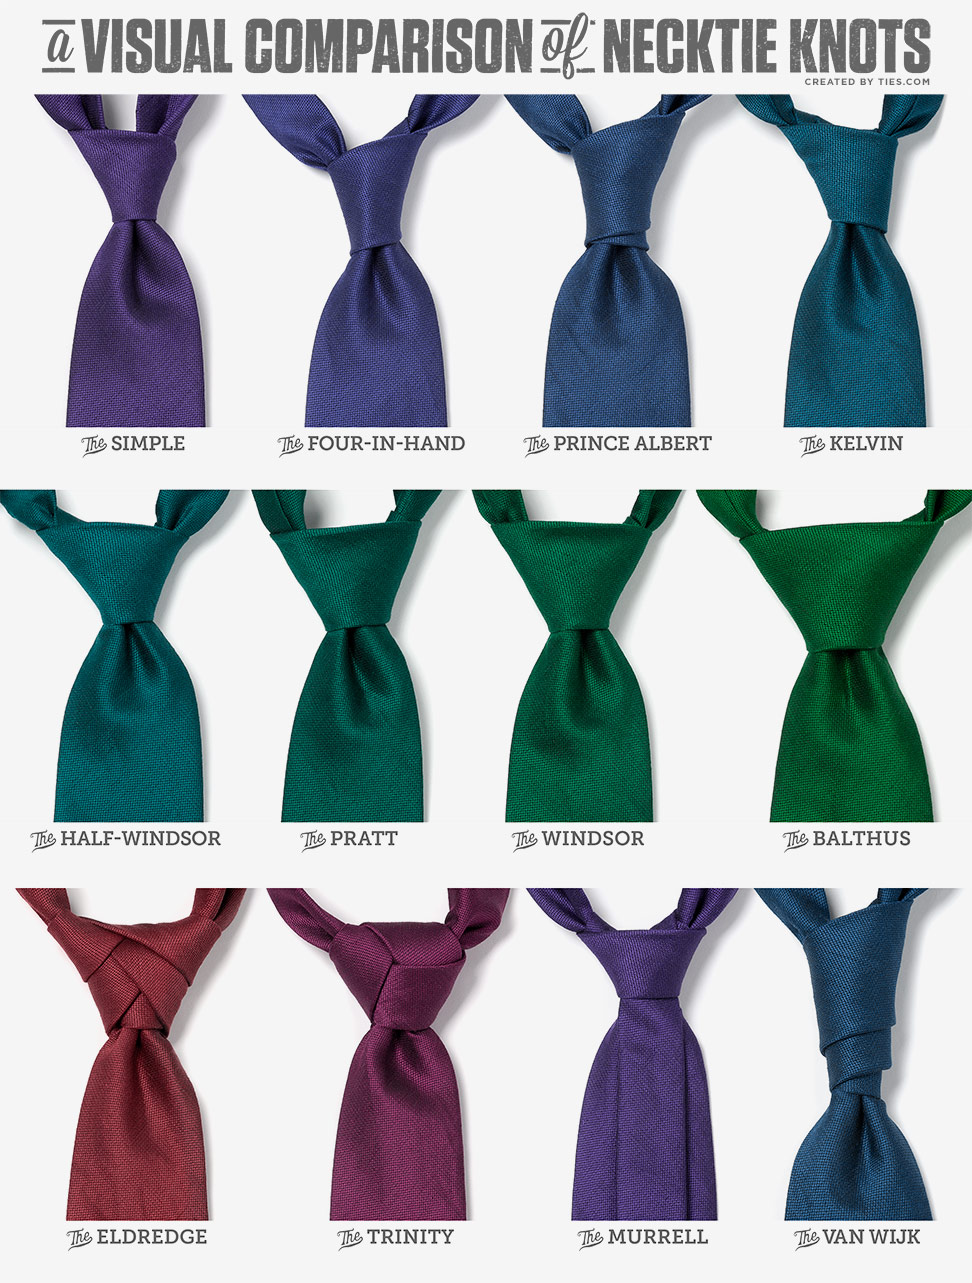 a_visual_comparison_of_necktie_knots